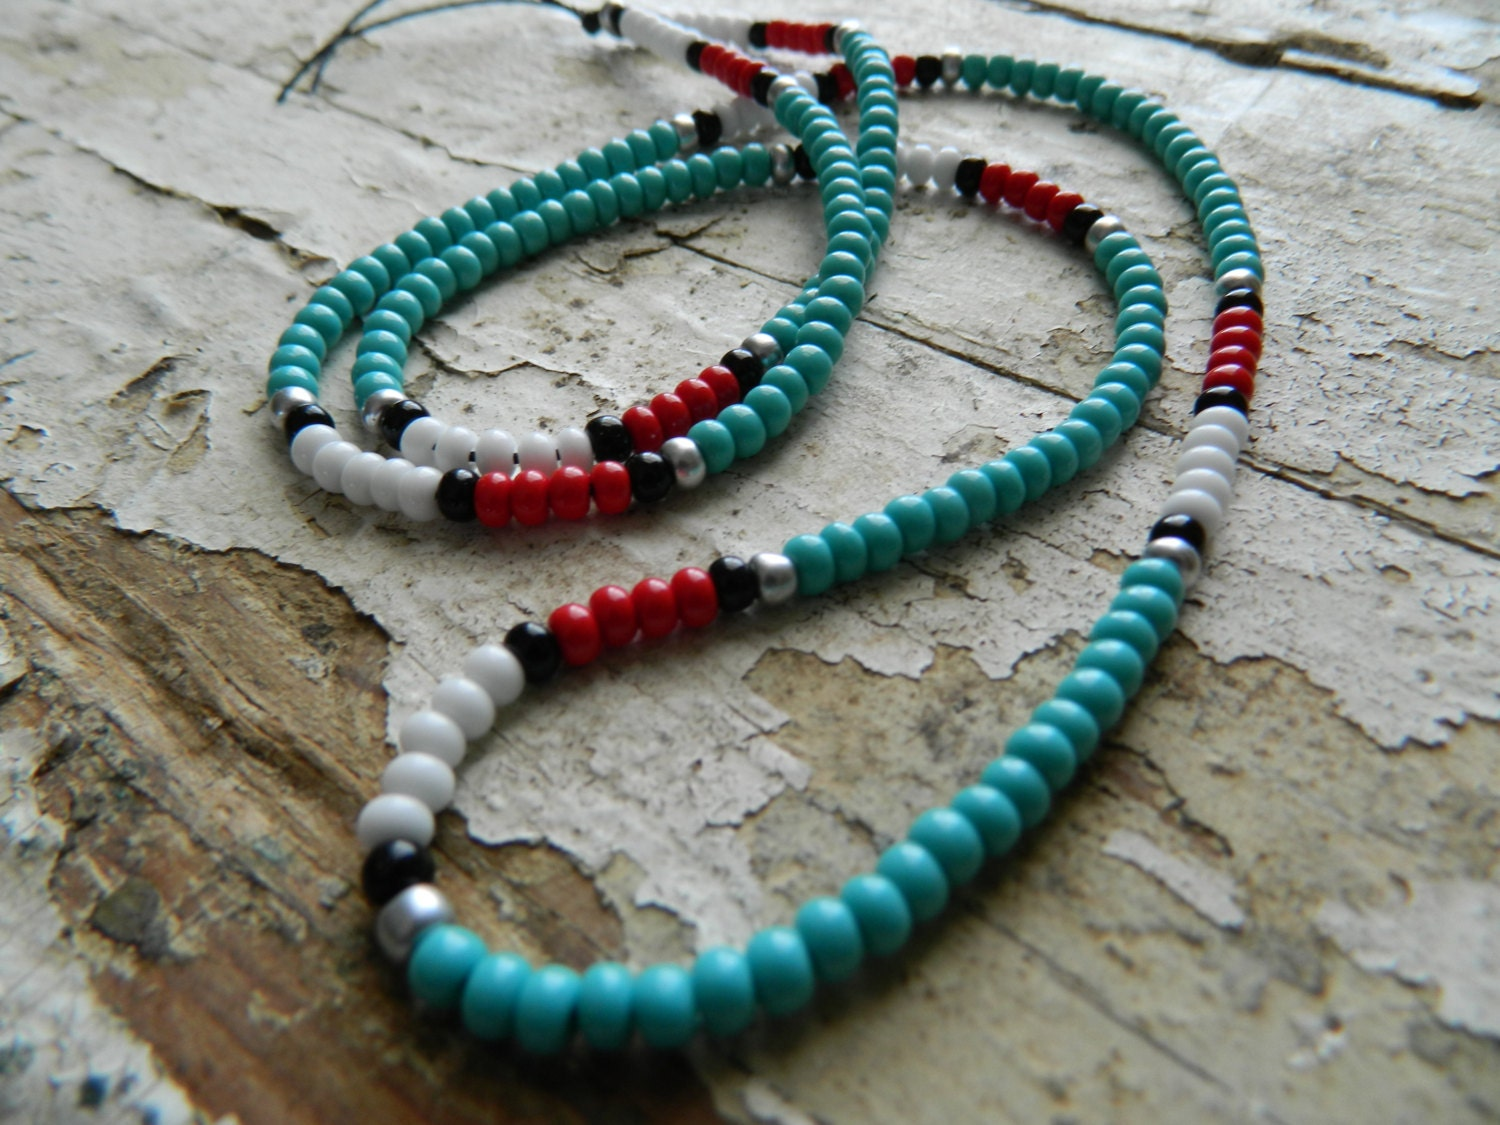 cobra photos morrison necklace jim apps edition photo zephyr native american bead